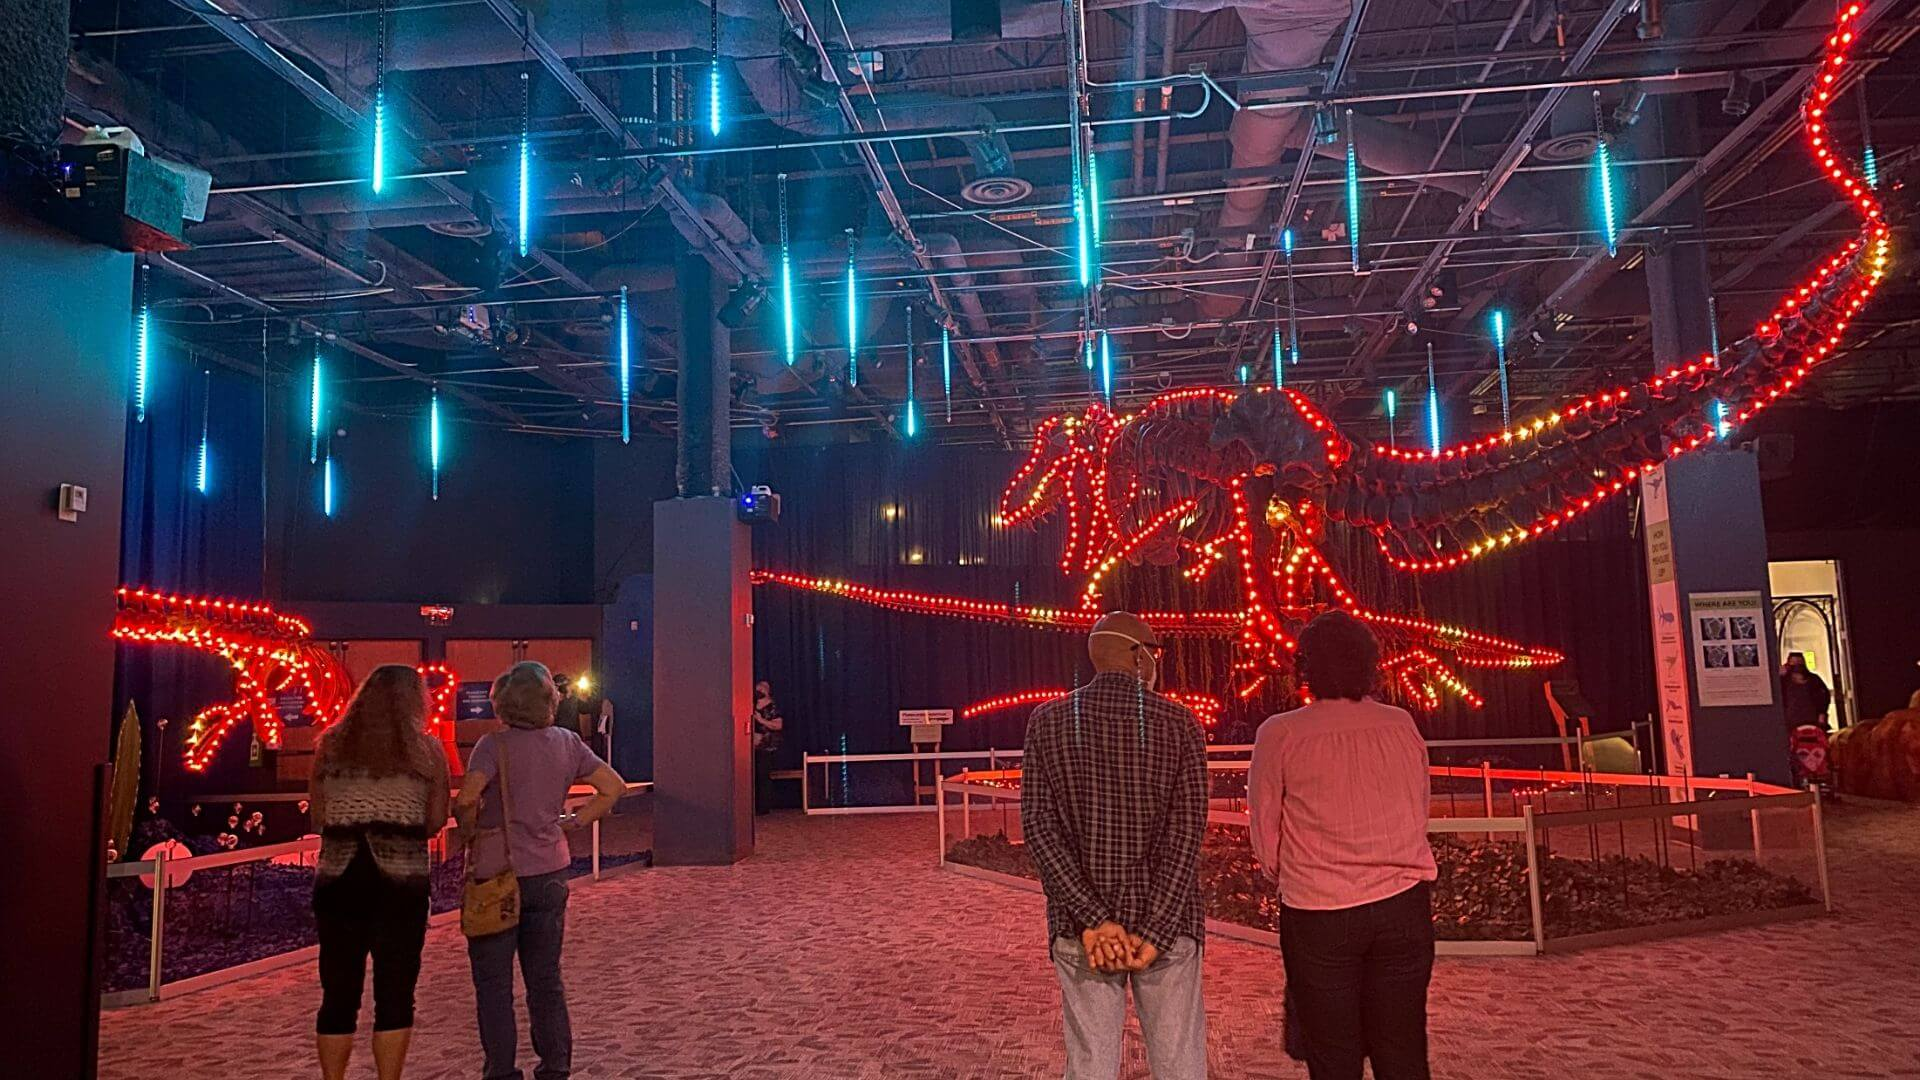 People watching Dinos in Lights